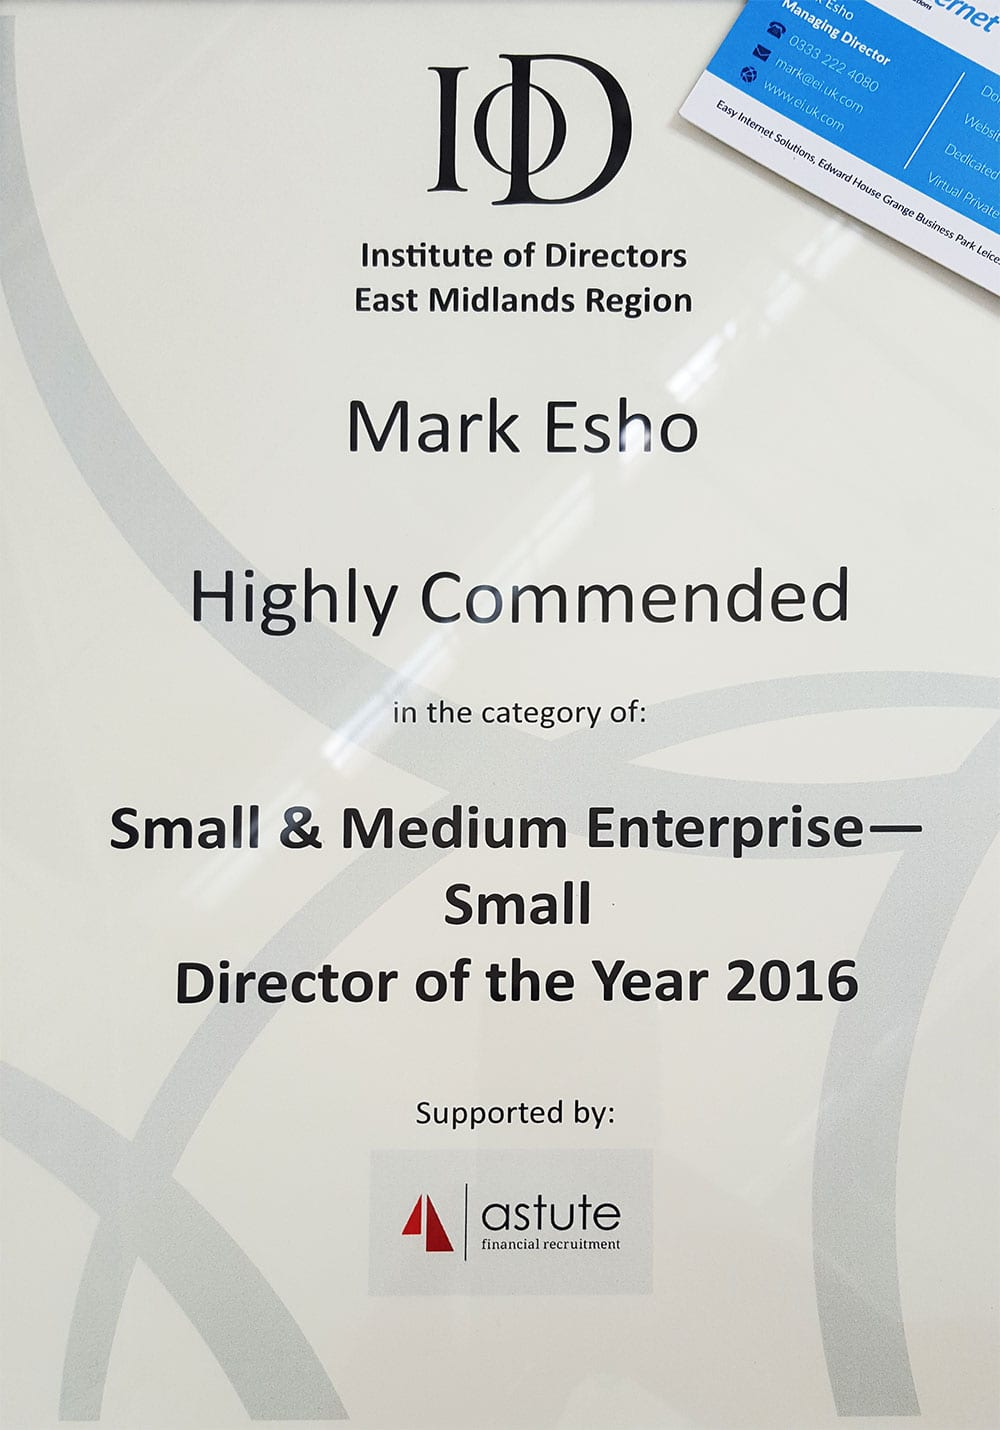 Institute of Directors (IoD) East Midlands Awards 2016 – Highly Commended